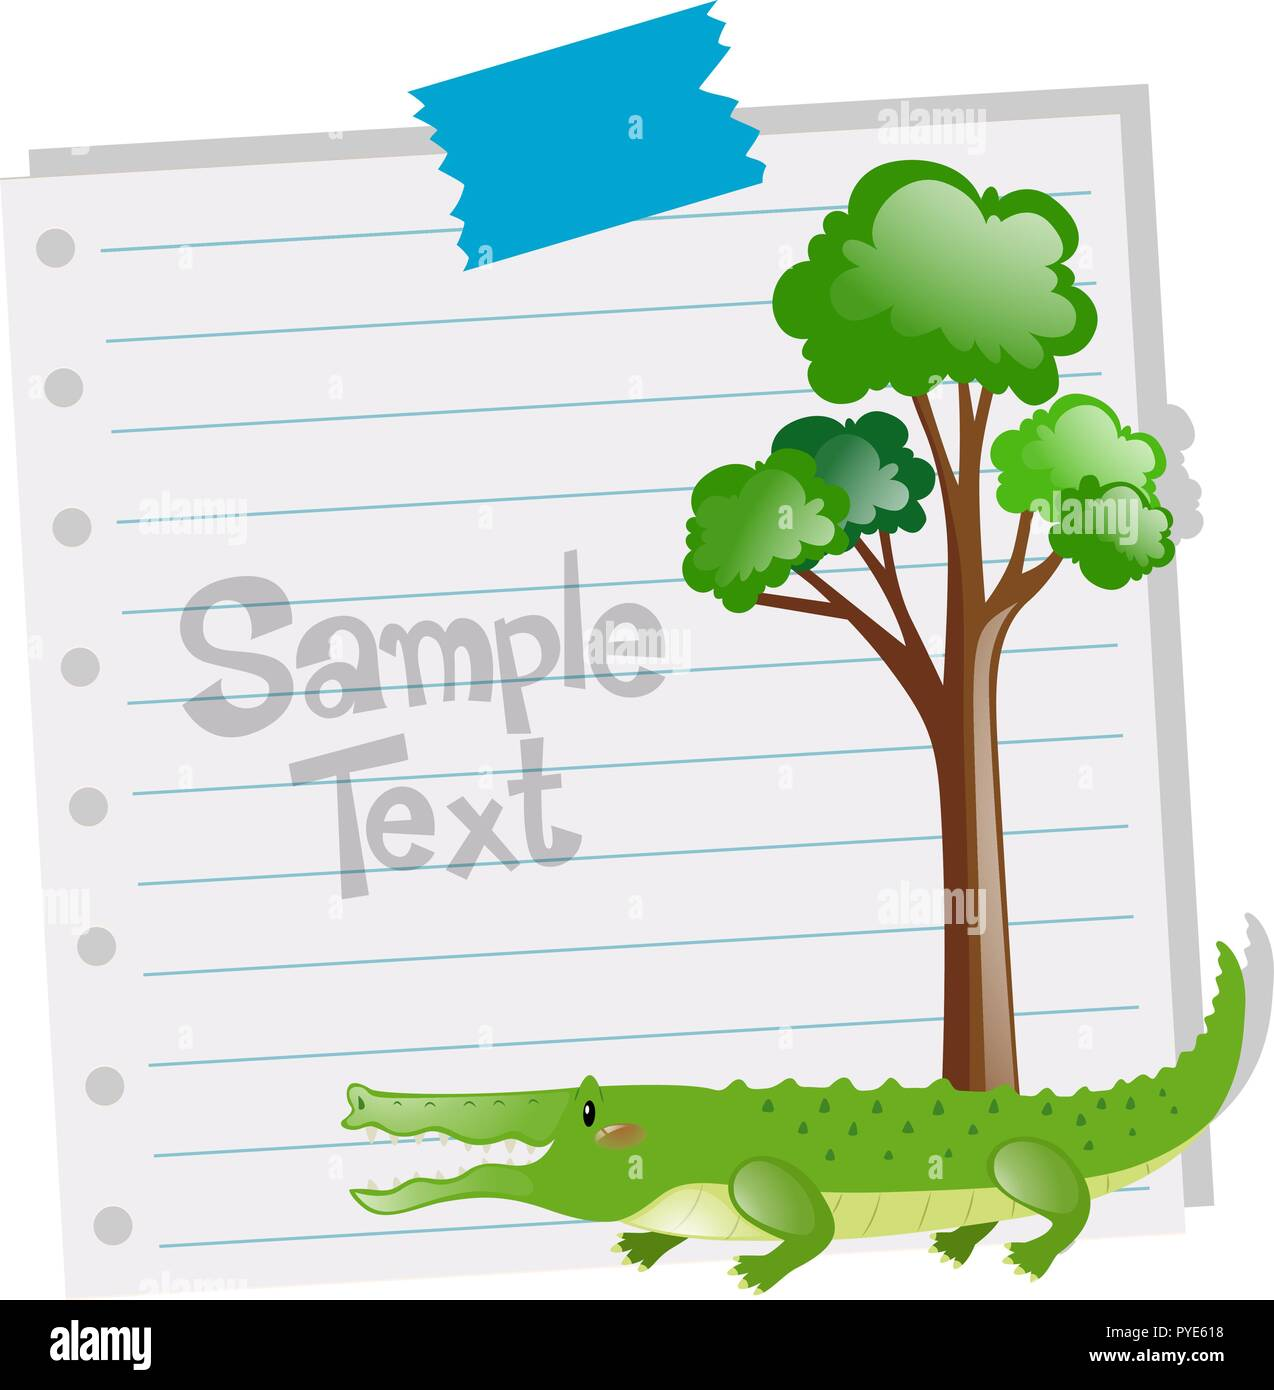 paper template with crocodile and tree illustration stock vector art